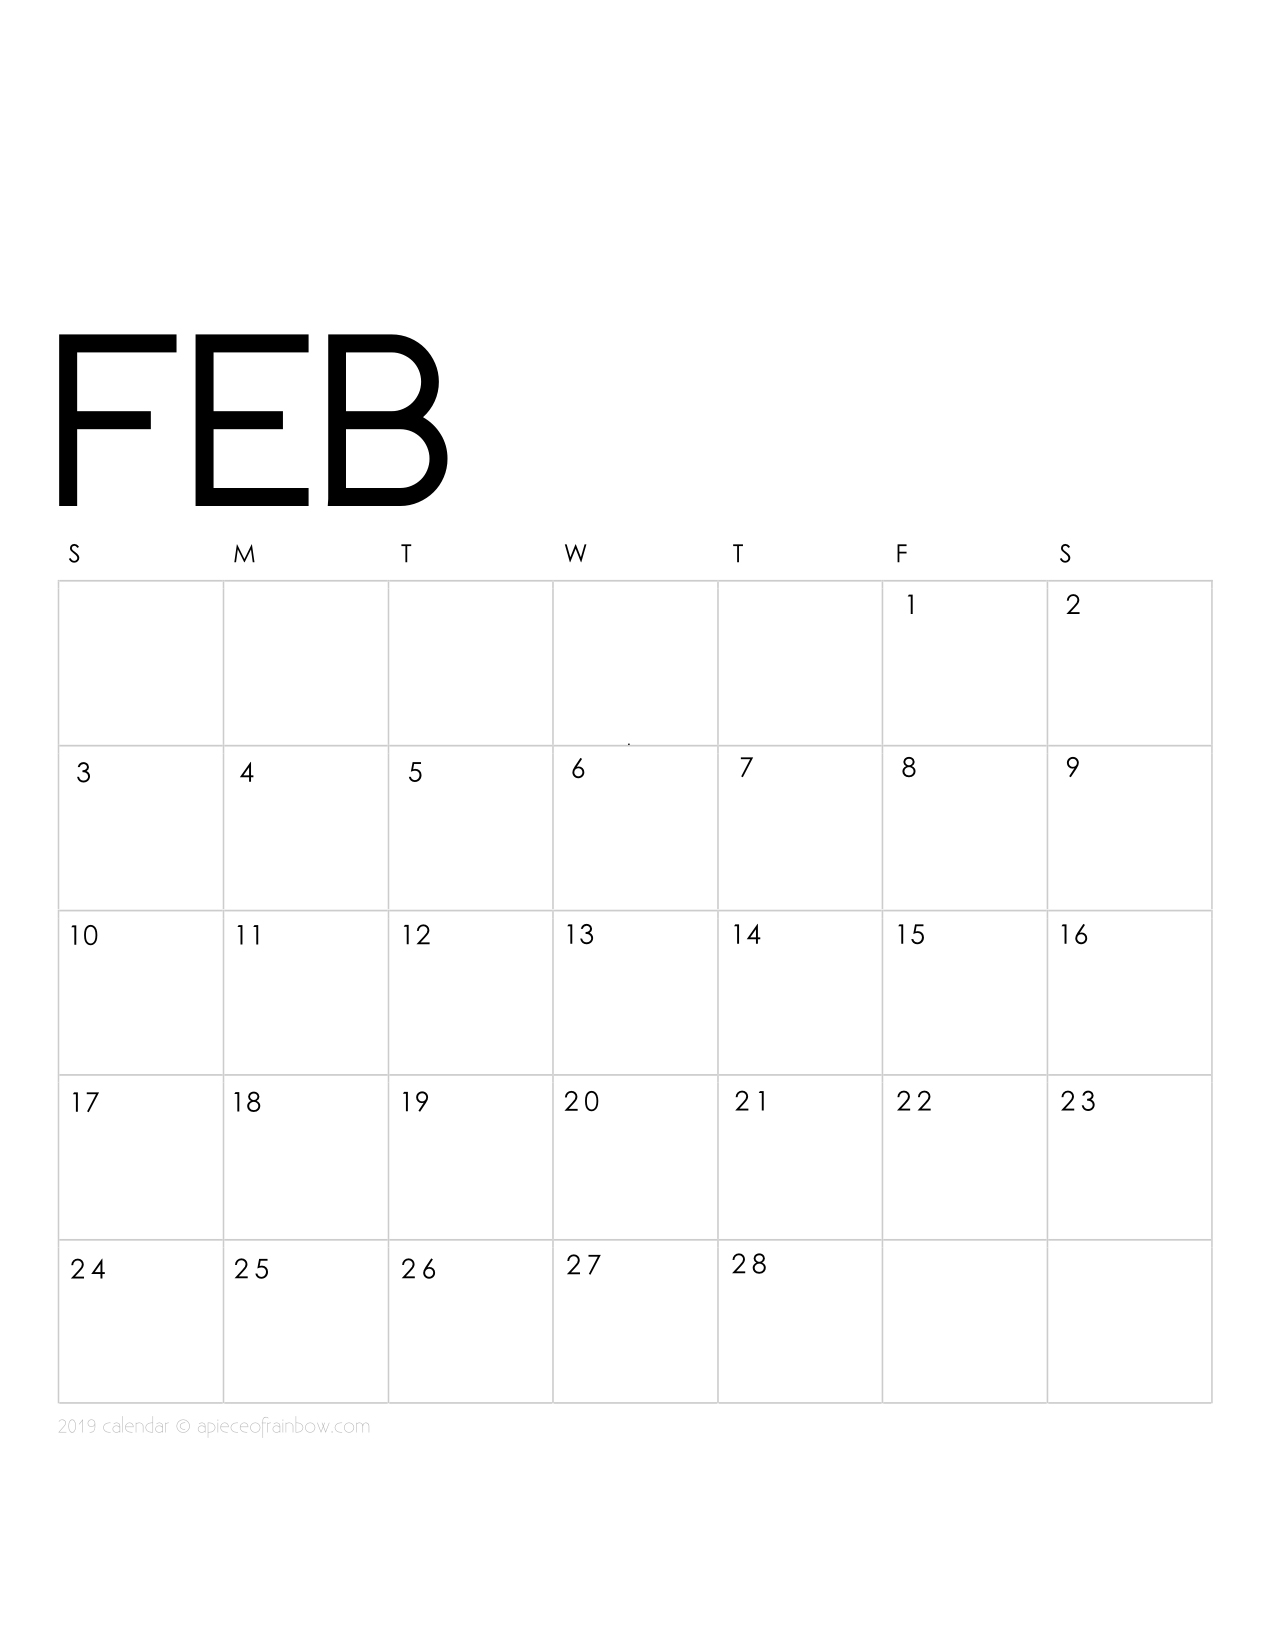 February Calendar 2019 with Notes